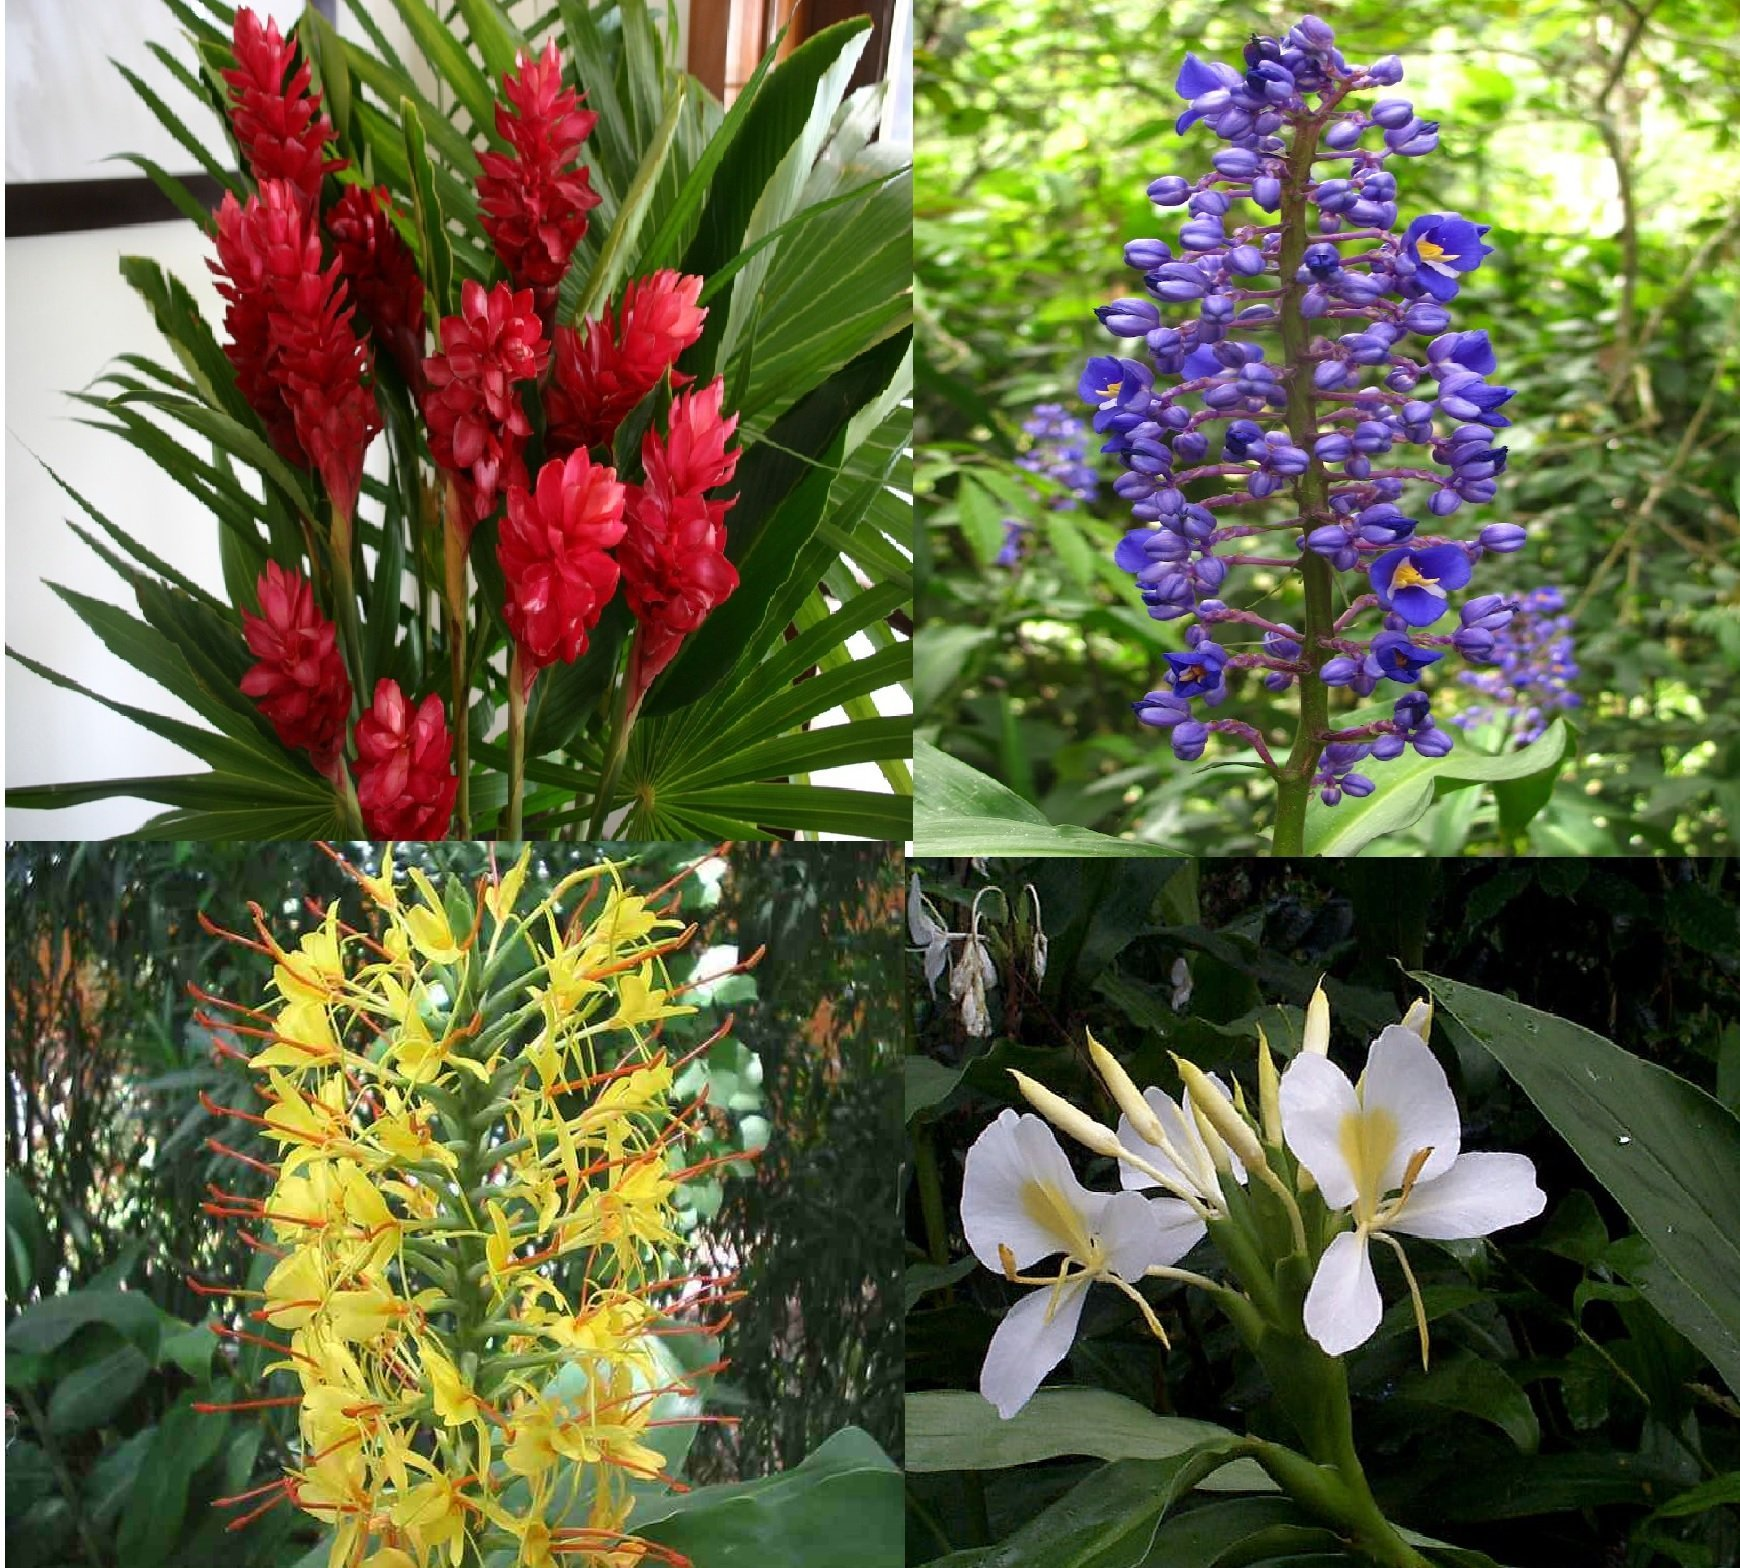 Amazon 4 mixed hawaiian ginger plant roots red blue white amazon 4 mixed hawaiian ginger plant roots red blue white yellow comes from a pest free certified hawaiian nursery flowering plants izmirmasajfo